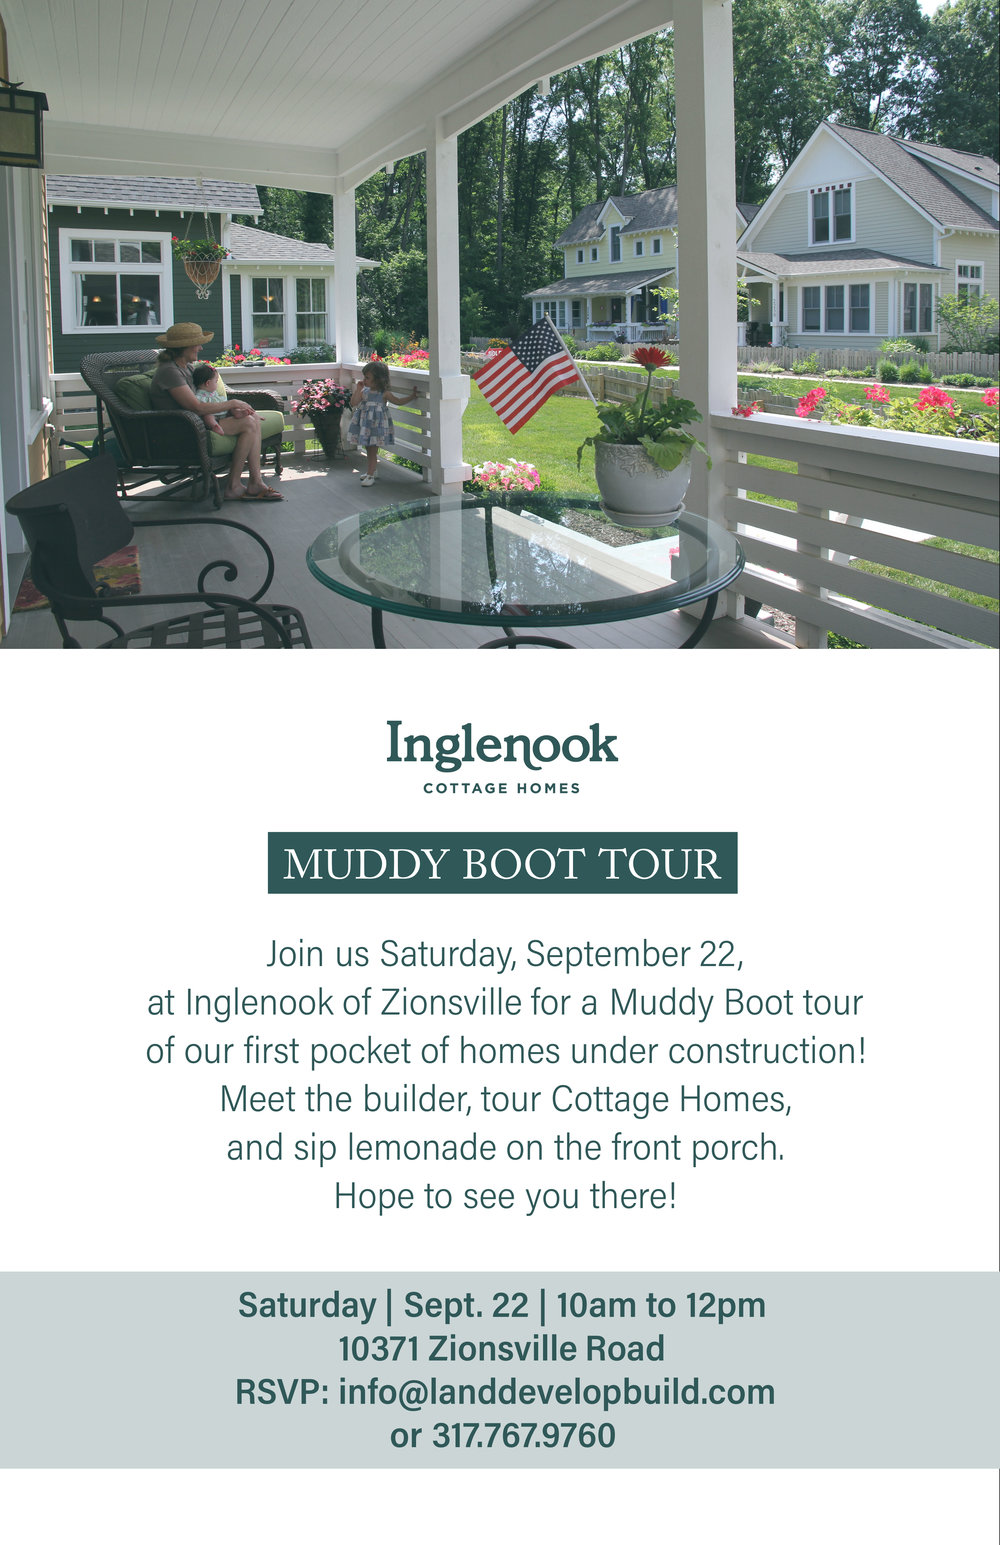 Inglenook of Zionsville Muddy Boot Tour